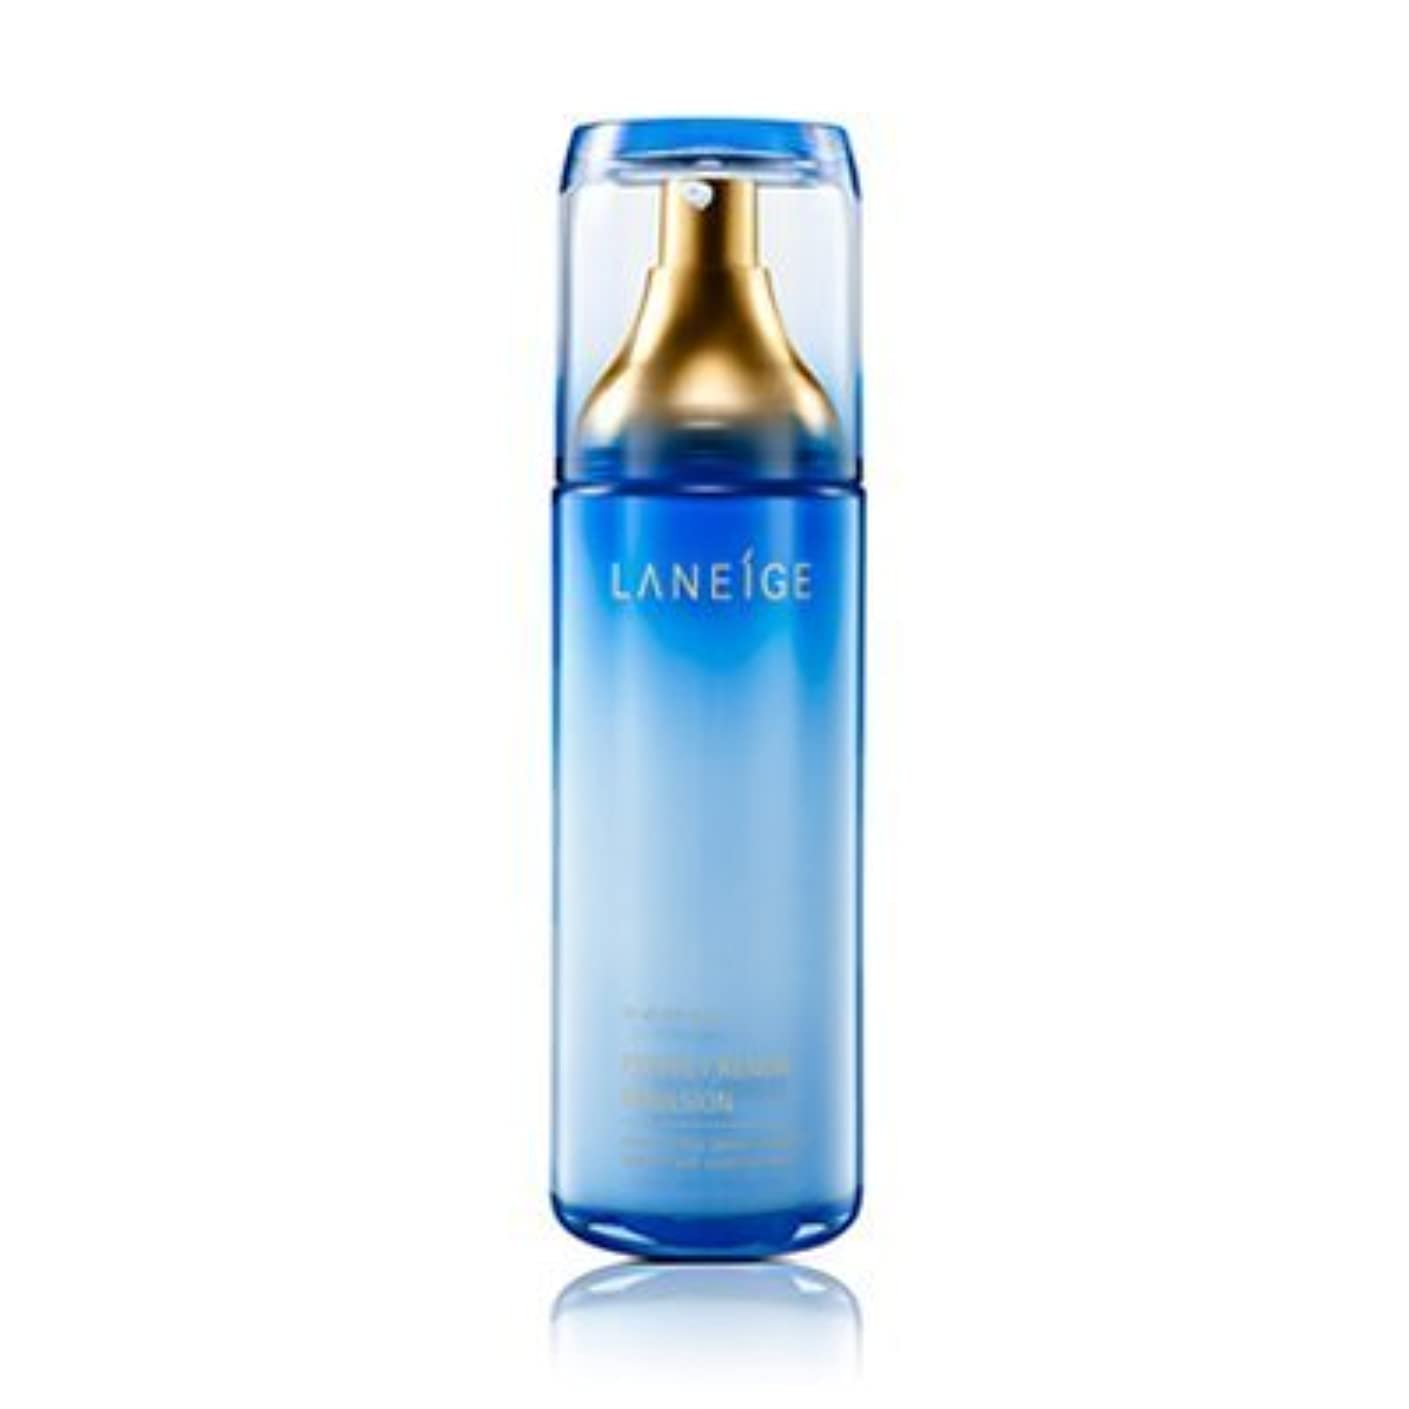 Amore Pacific Laneige Perfect Renew Emulsion 3.4fl.oz/100ml by Laneige [並行輸入品]